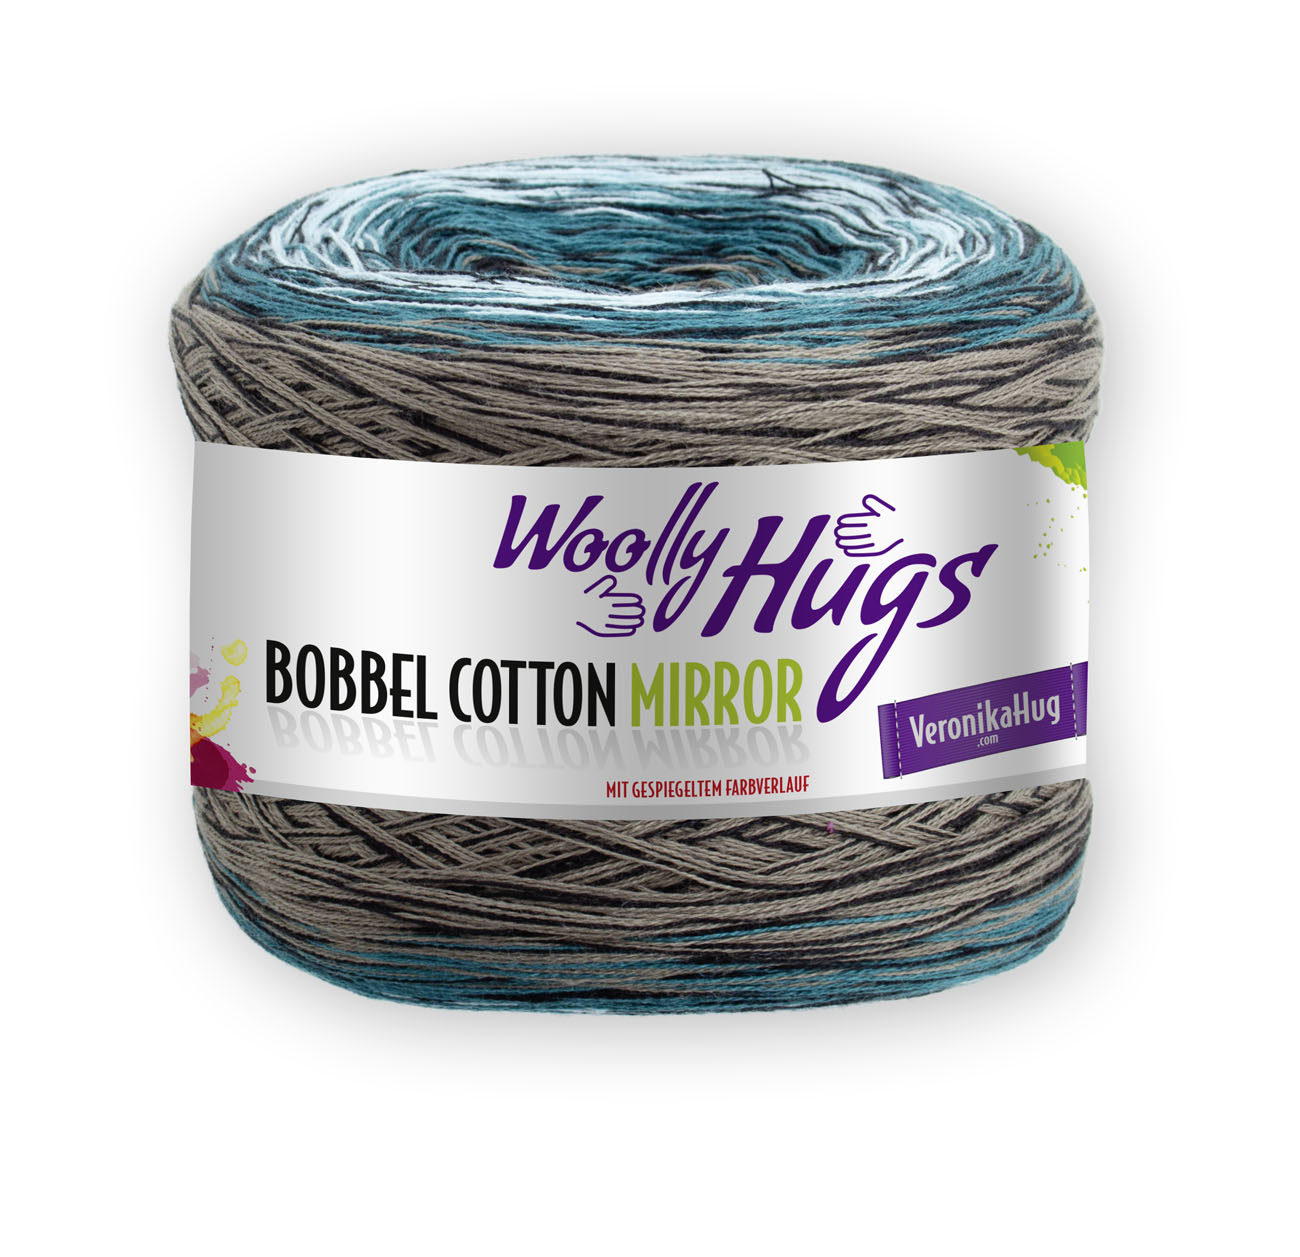 Woolly Hugs BOBBEL cotton MIRROR  200g 1kg